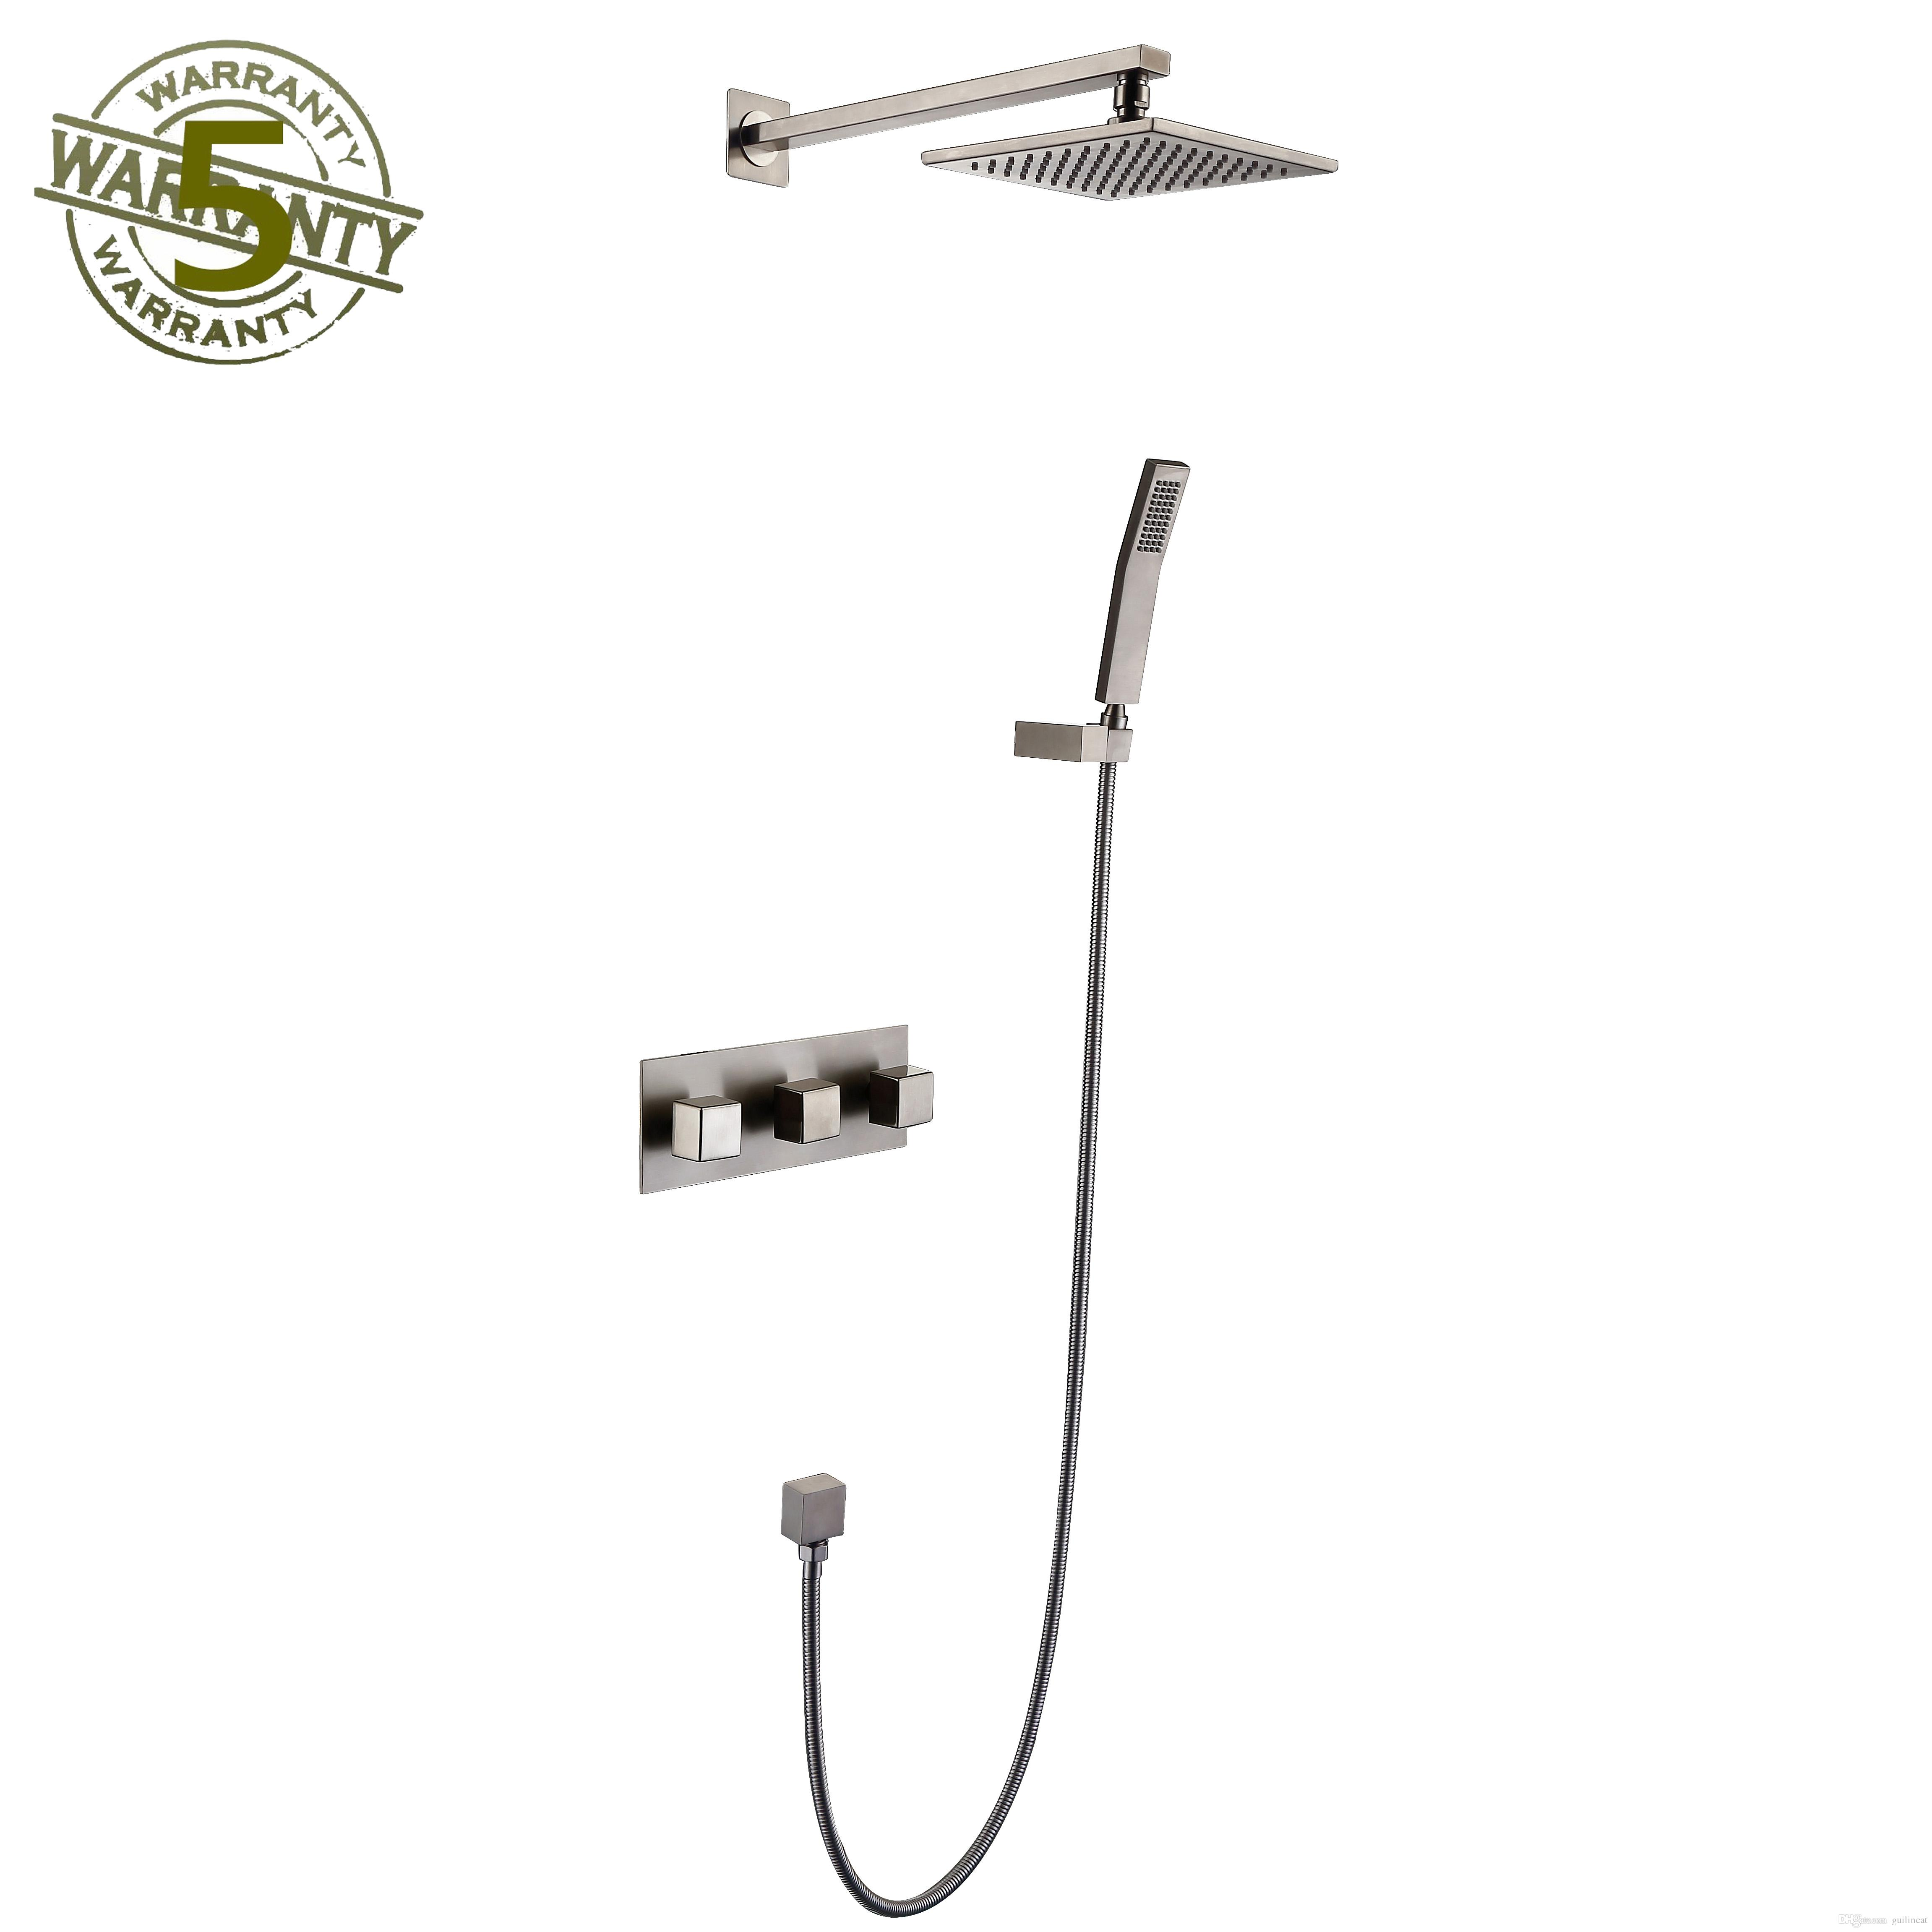 Shower Faucet System Nickel Brushed Finish Mixer 8 Showerhead Rainfall With High Pressure Combo Set Wall Mounted Three Handles